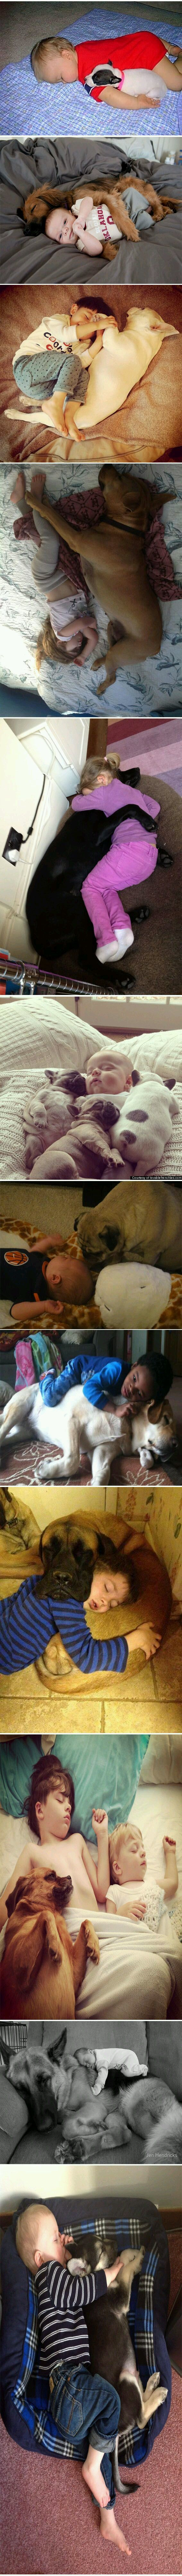 Every kid should have a dog